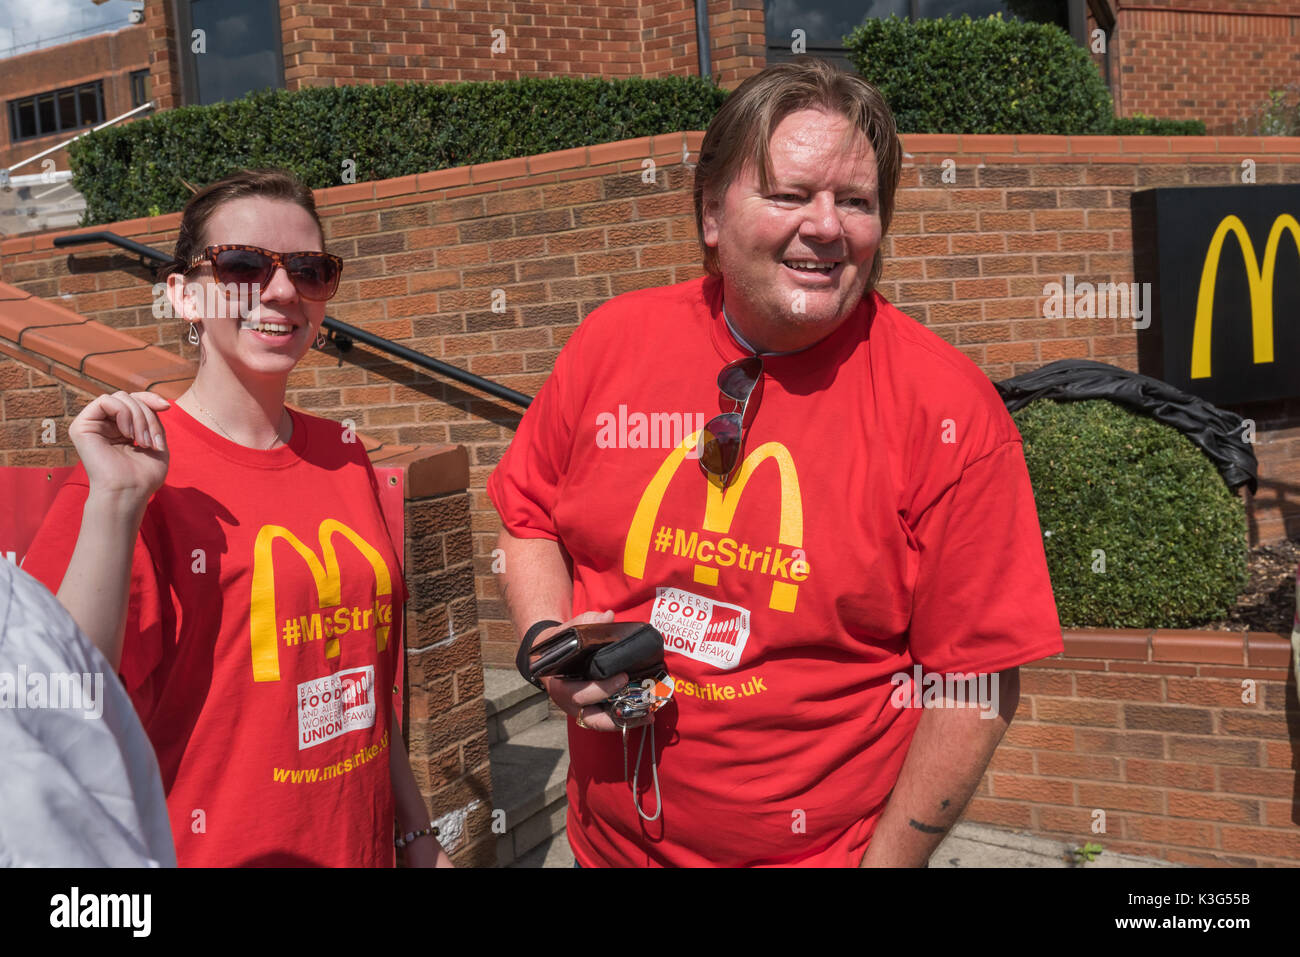 London, UK. 2nd September 2017. Bakers, Food and Allied Workers Union (BFAWU) President Ian Hodson  with one of the strikers outside McDonald's London HQ for a support rally in advance of the first UK strike against the company on Monday, US Labor Day. The workers demand an end to zero hours contracts, £10 an hour and union recognition.  Bakers, Food and Allied Workers Union Credit: Peter Marshall/Alamy Live News - Stock Image